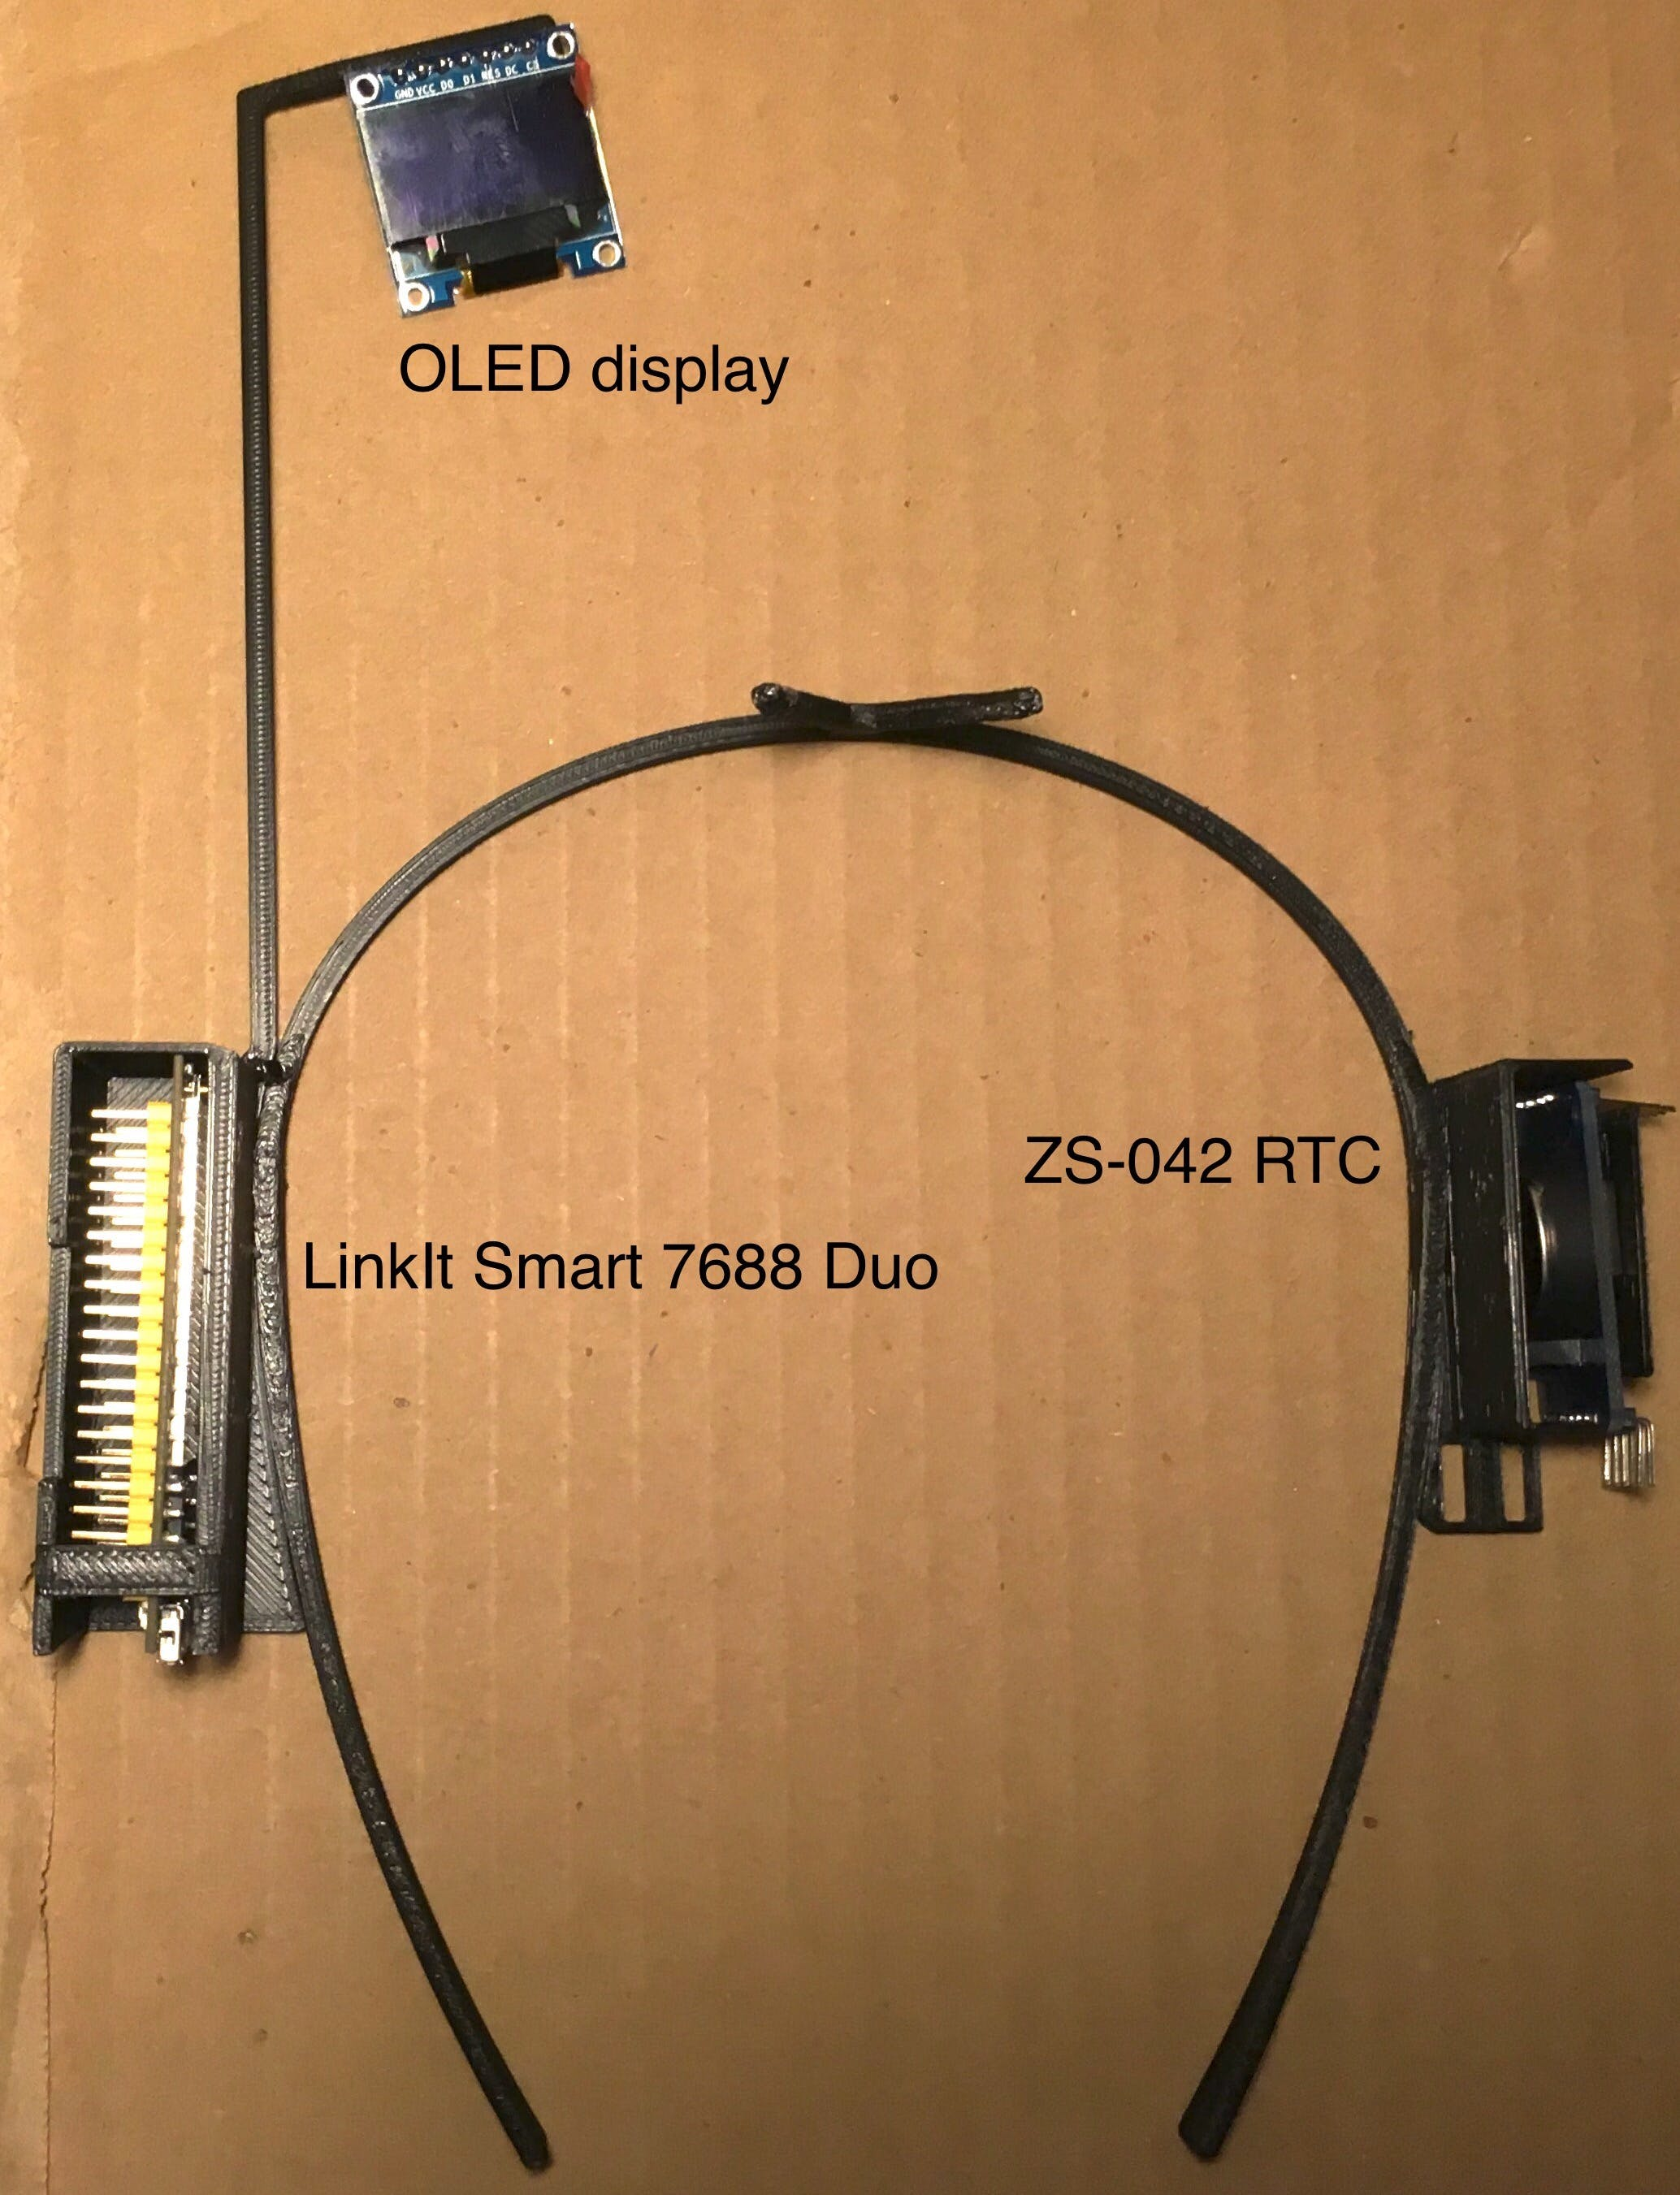 LinkIt Smart 7688 Duo, ZS-042 RTC, and OLED